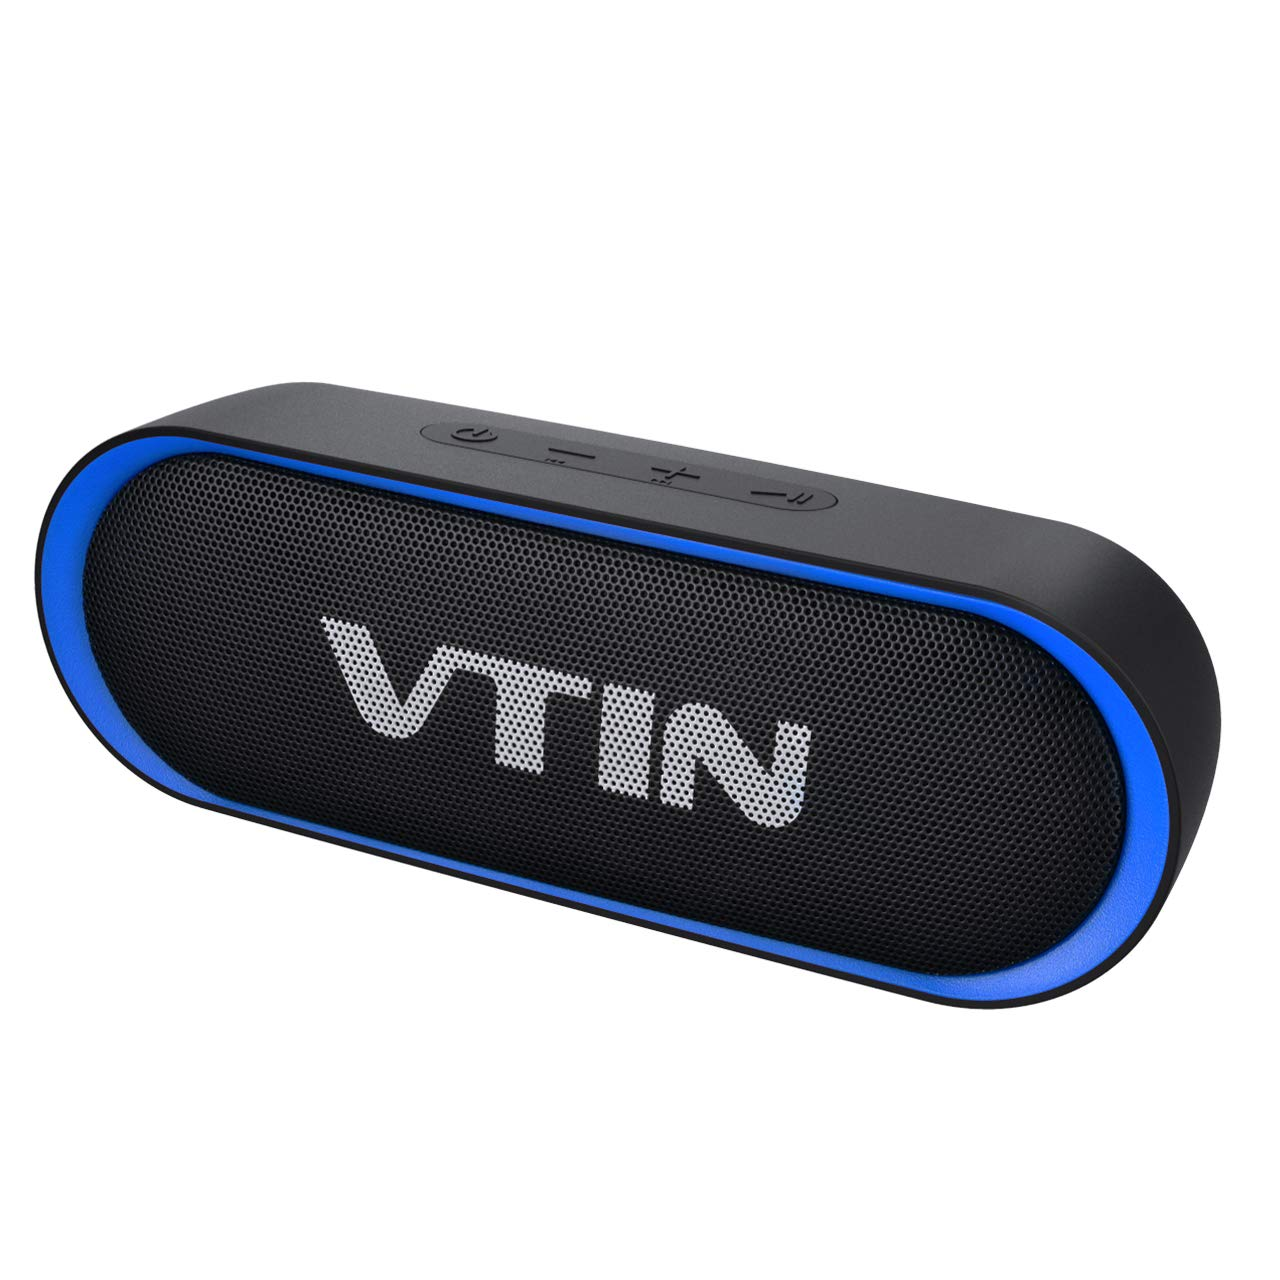 VTIN R4 Bluetooth Speaker V5.0, Portable Bluetooth Speaker with 24H Playtime, Loud Stereo Sound, 10W Powerful Waterproof Speaker, Built-in Mic, Support TF Card, Compatible for iOS, Android, PC